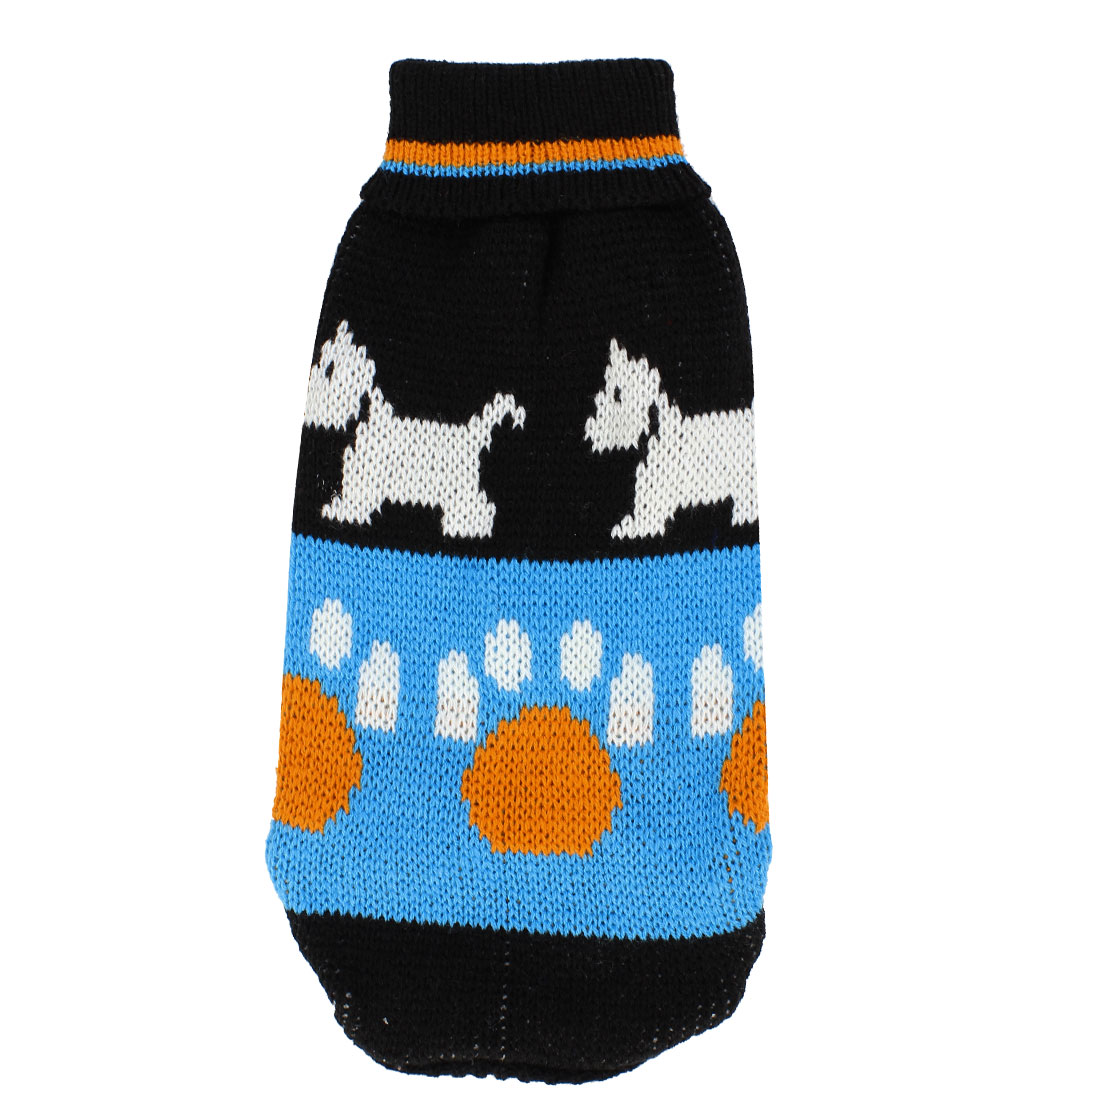 Pet Doggy Yorkie Black Blue Ribbed Cuff Dog Pattern Knitwear Turtleneck Apparel Sweater Size S